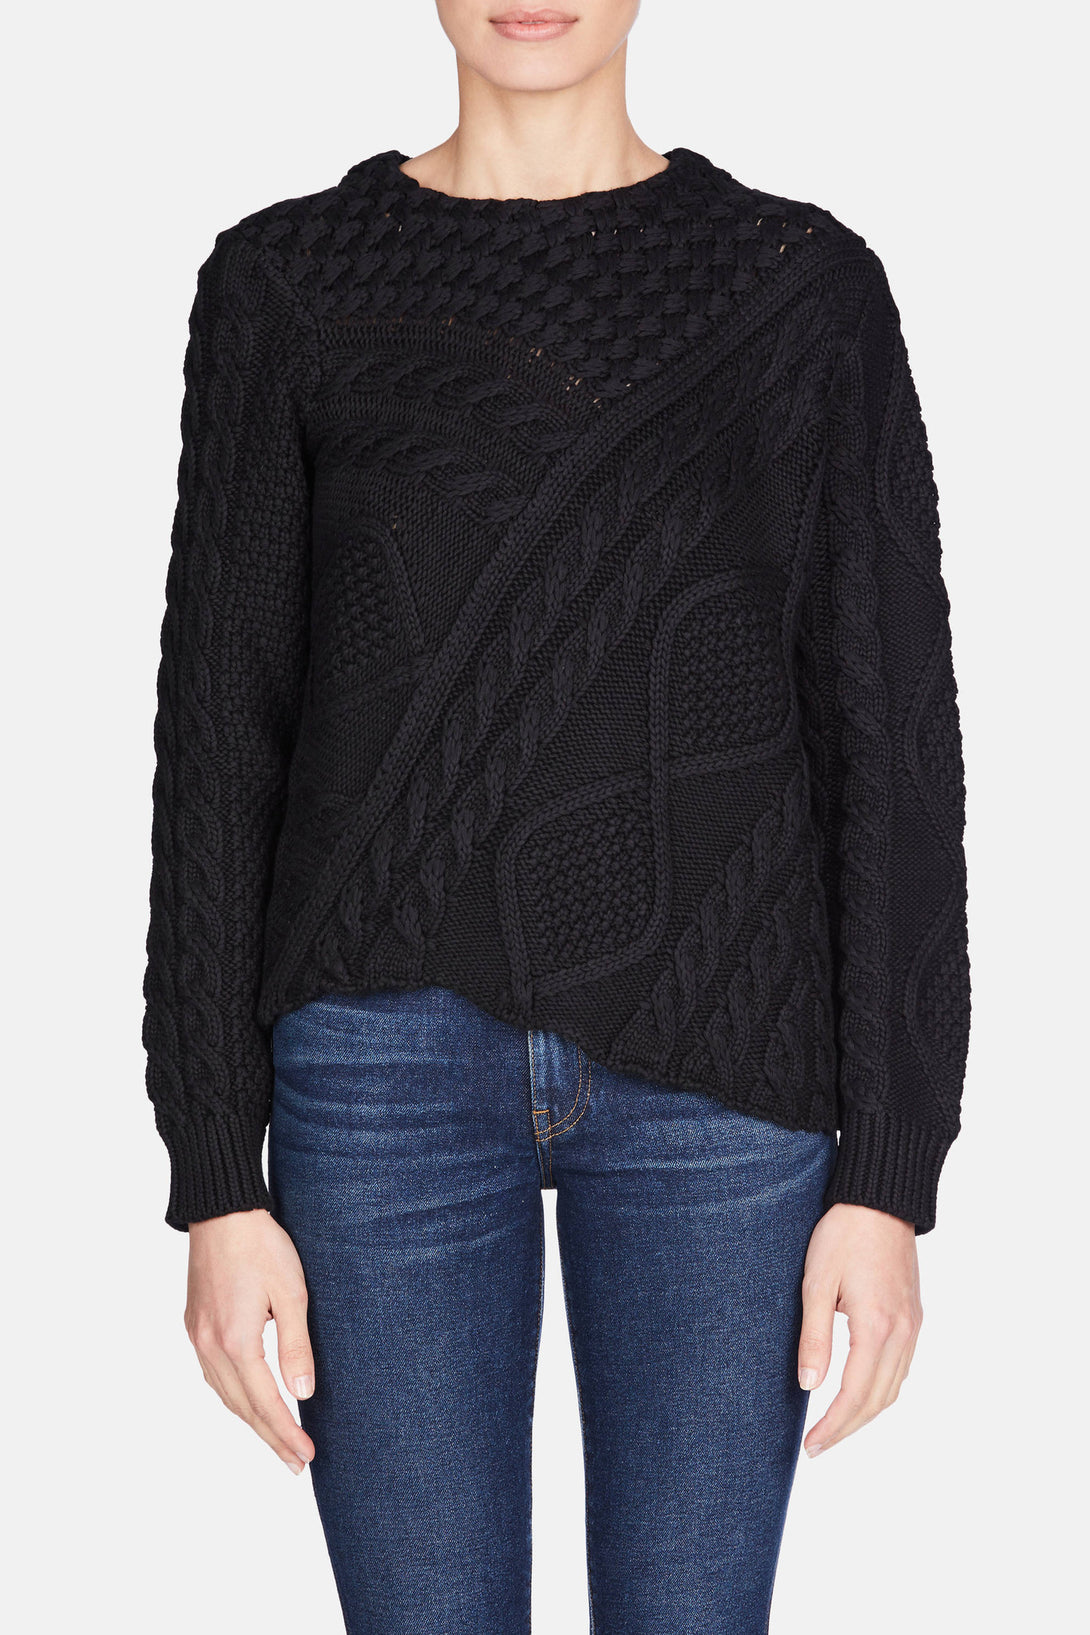 Patchwork Sweater - Black